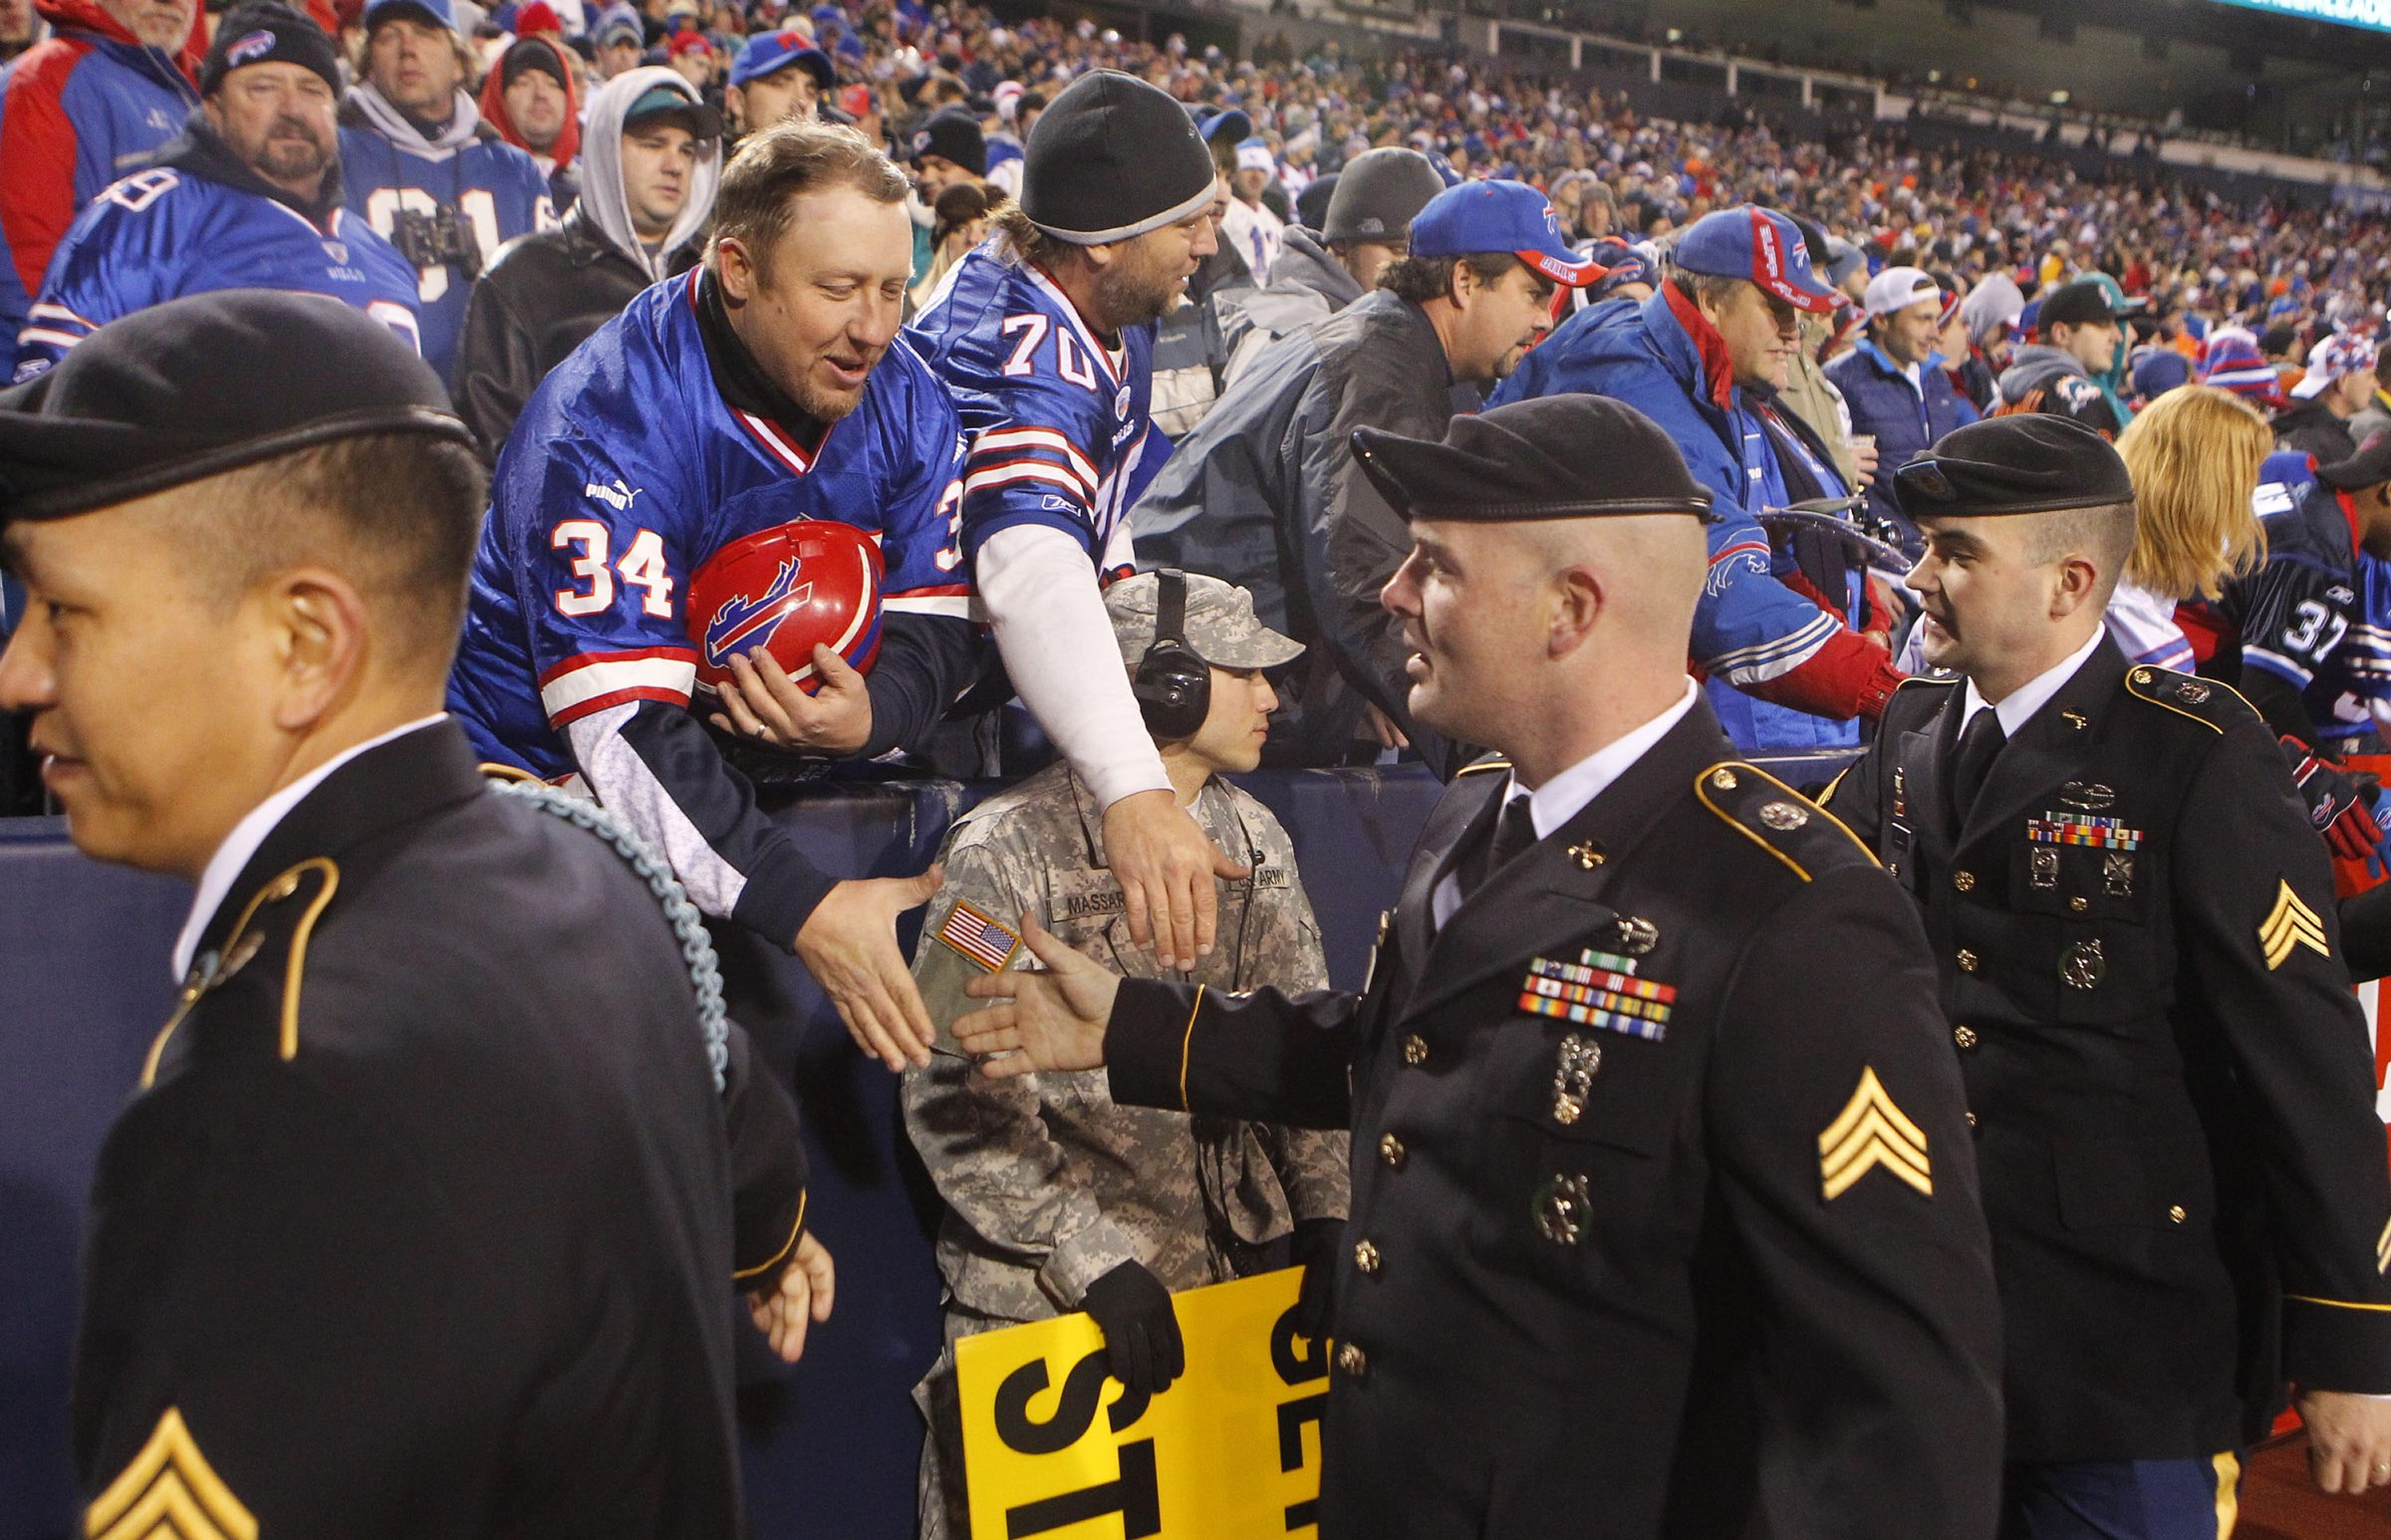 Over the last four seasons, tributes paid to service members at Ralph Wilson Stadium have netted $679,000 for the Bills.